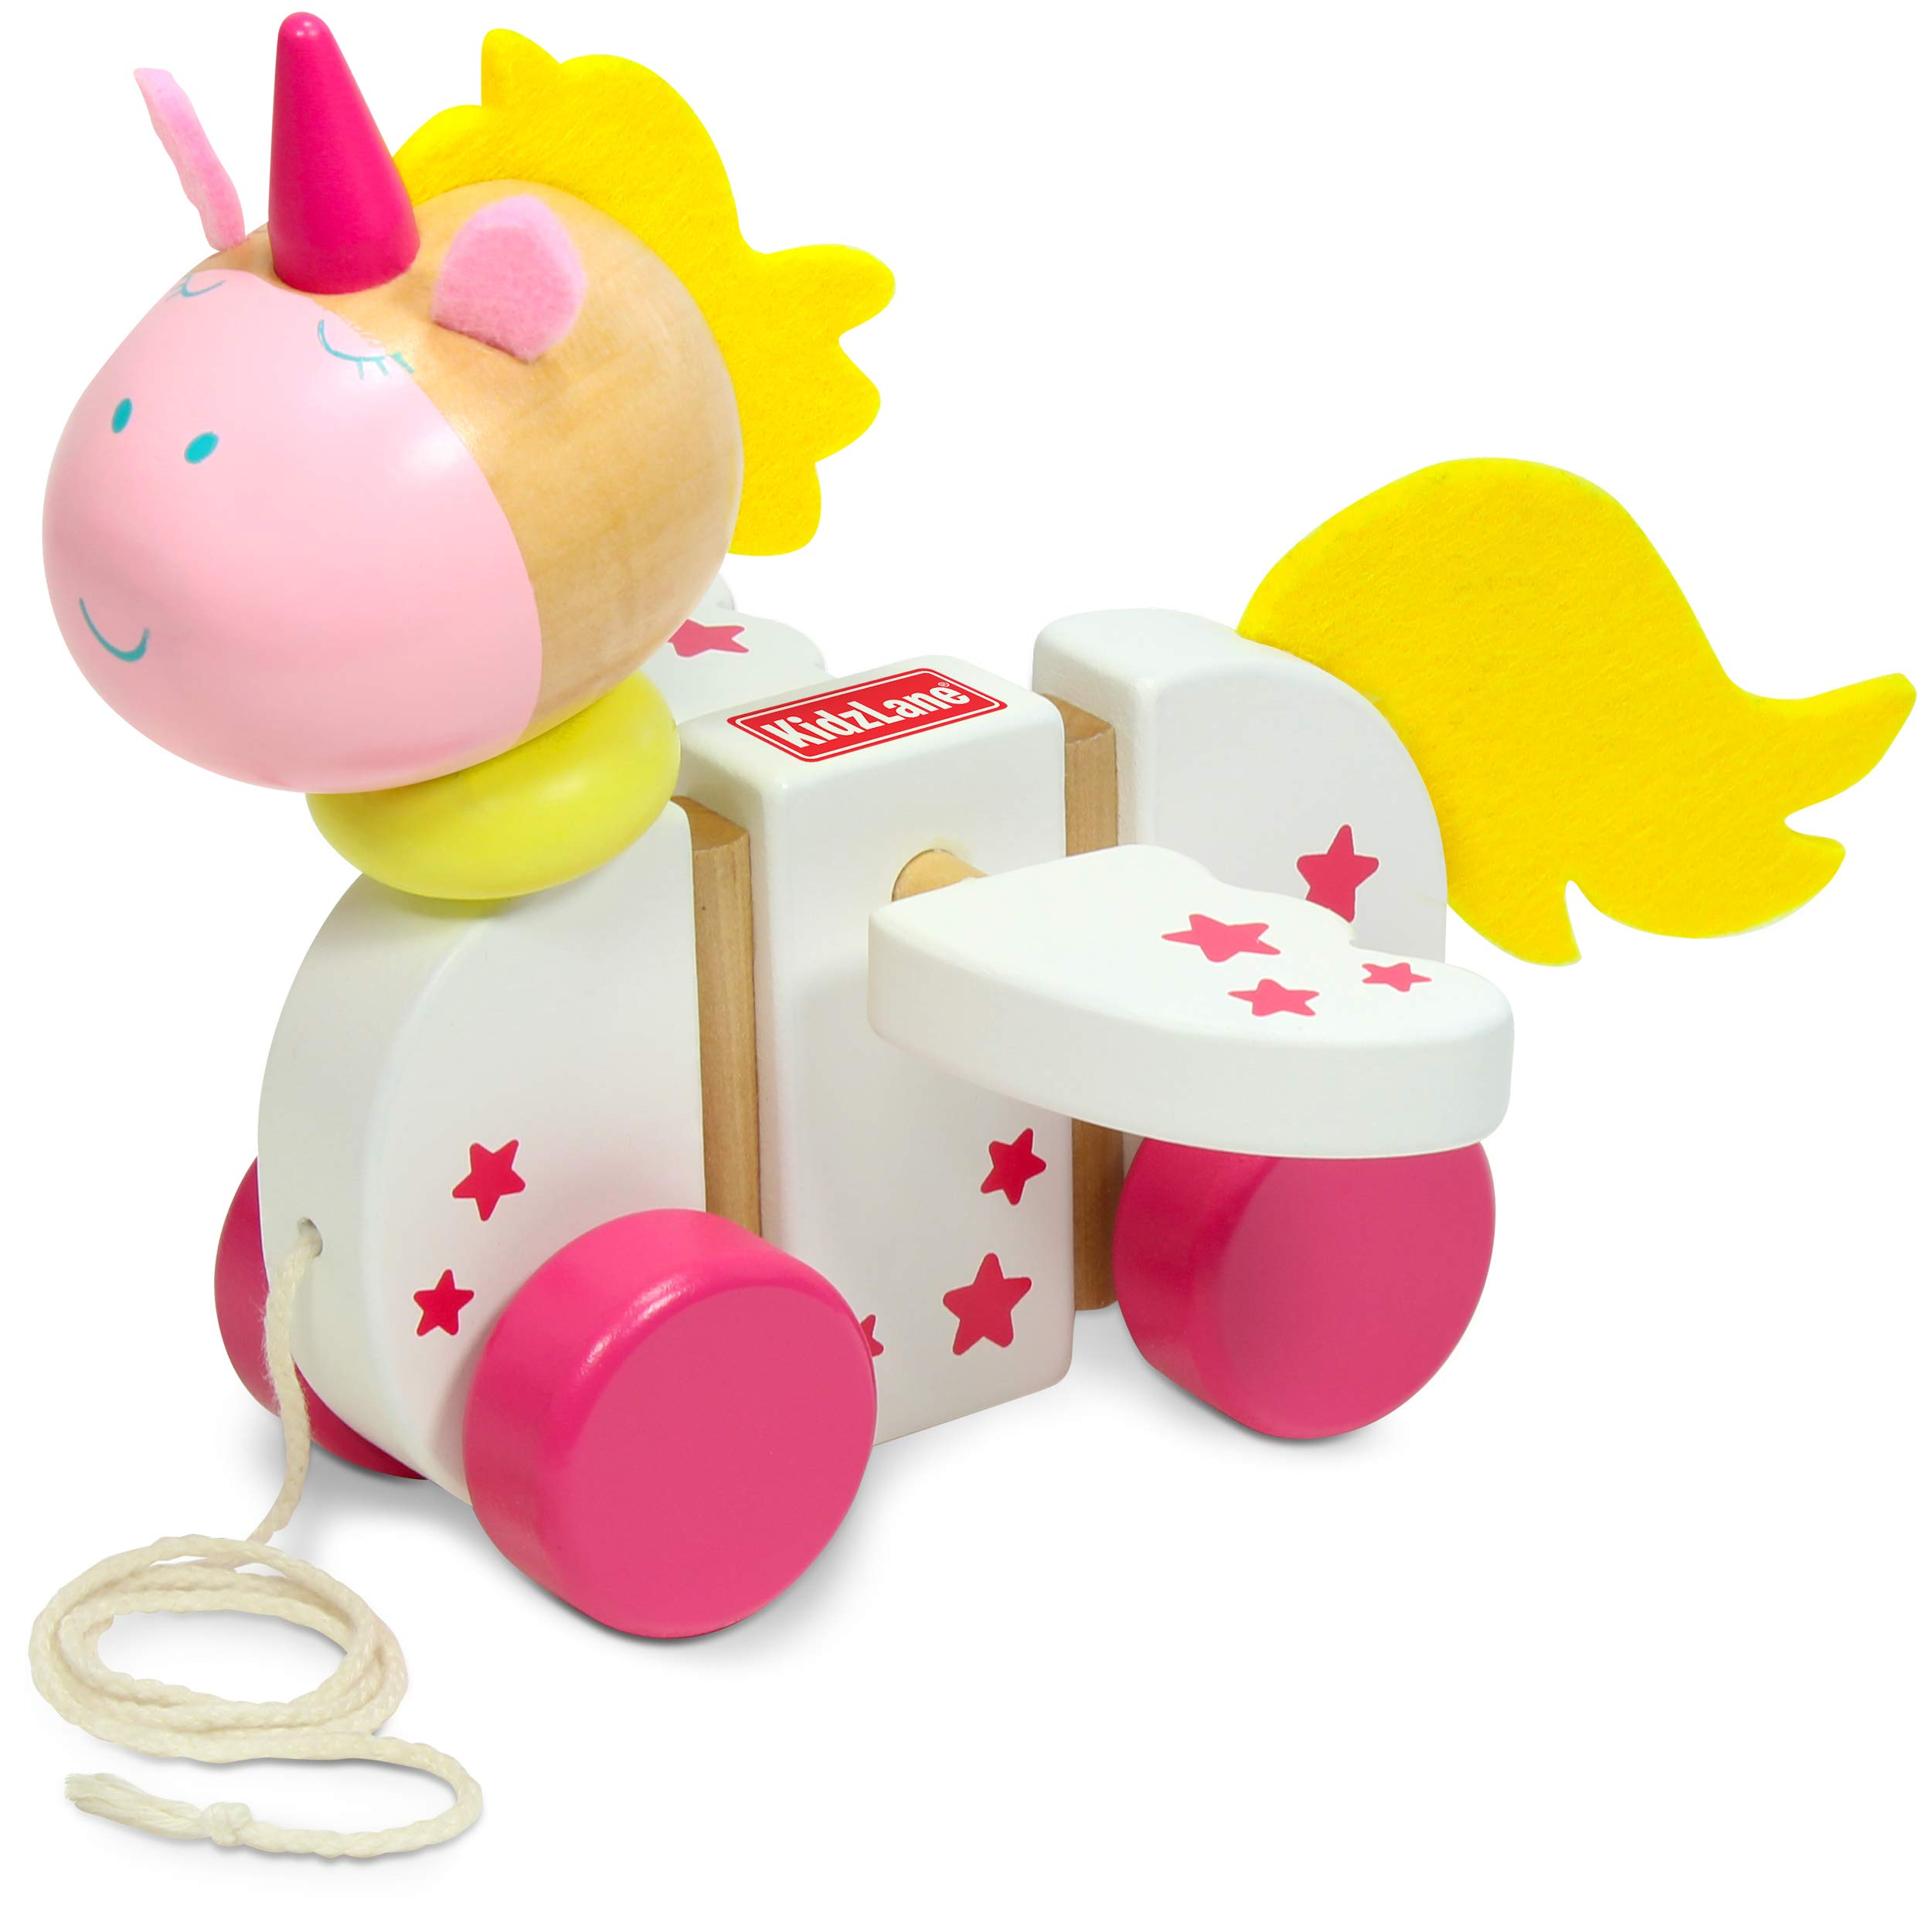 Kidzlane Wooden Unicorn Pull Toy for Toddlers | Easy-Grip Handle